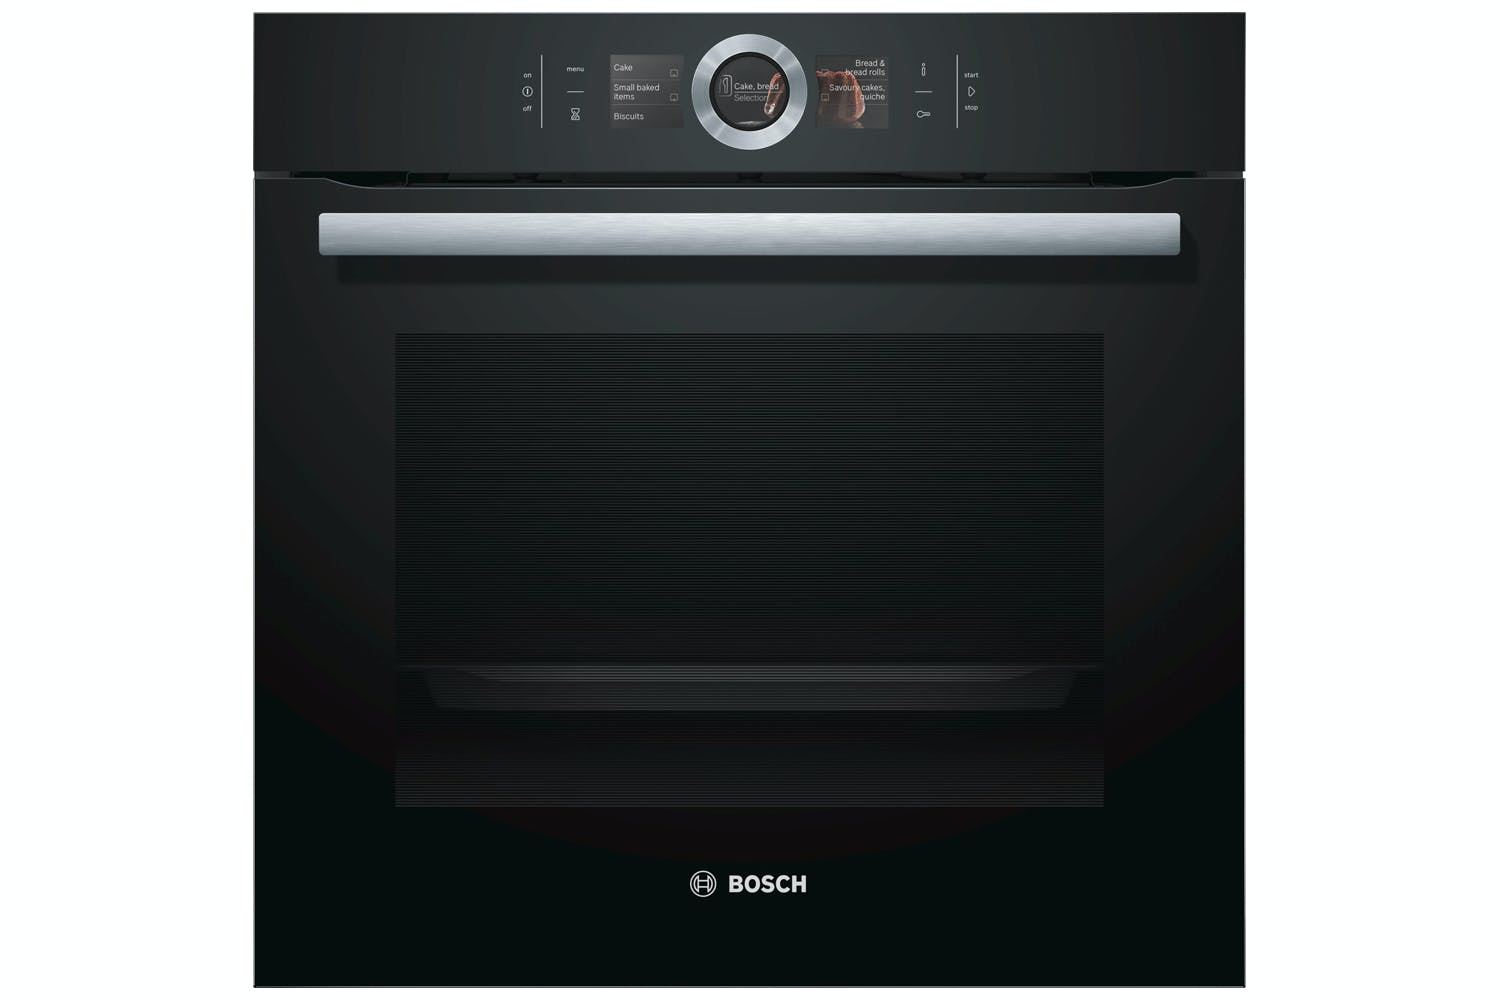 bosch series 8 built in single oven hbg656rb6b ireland. Black Bedroom Furniture Sets. Home Design Ideas